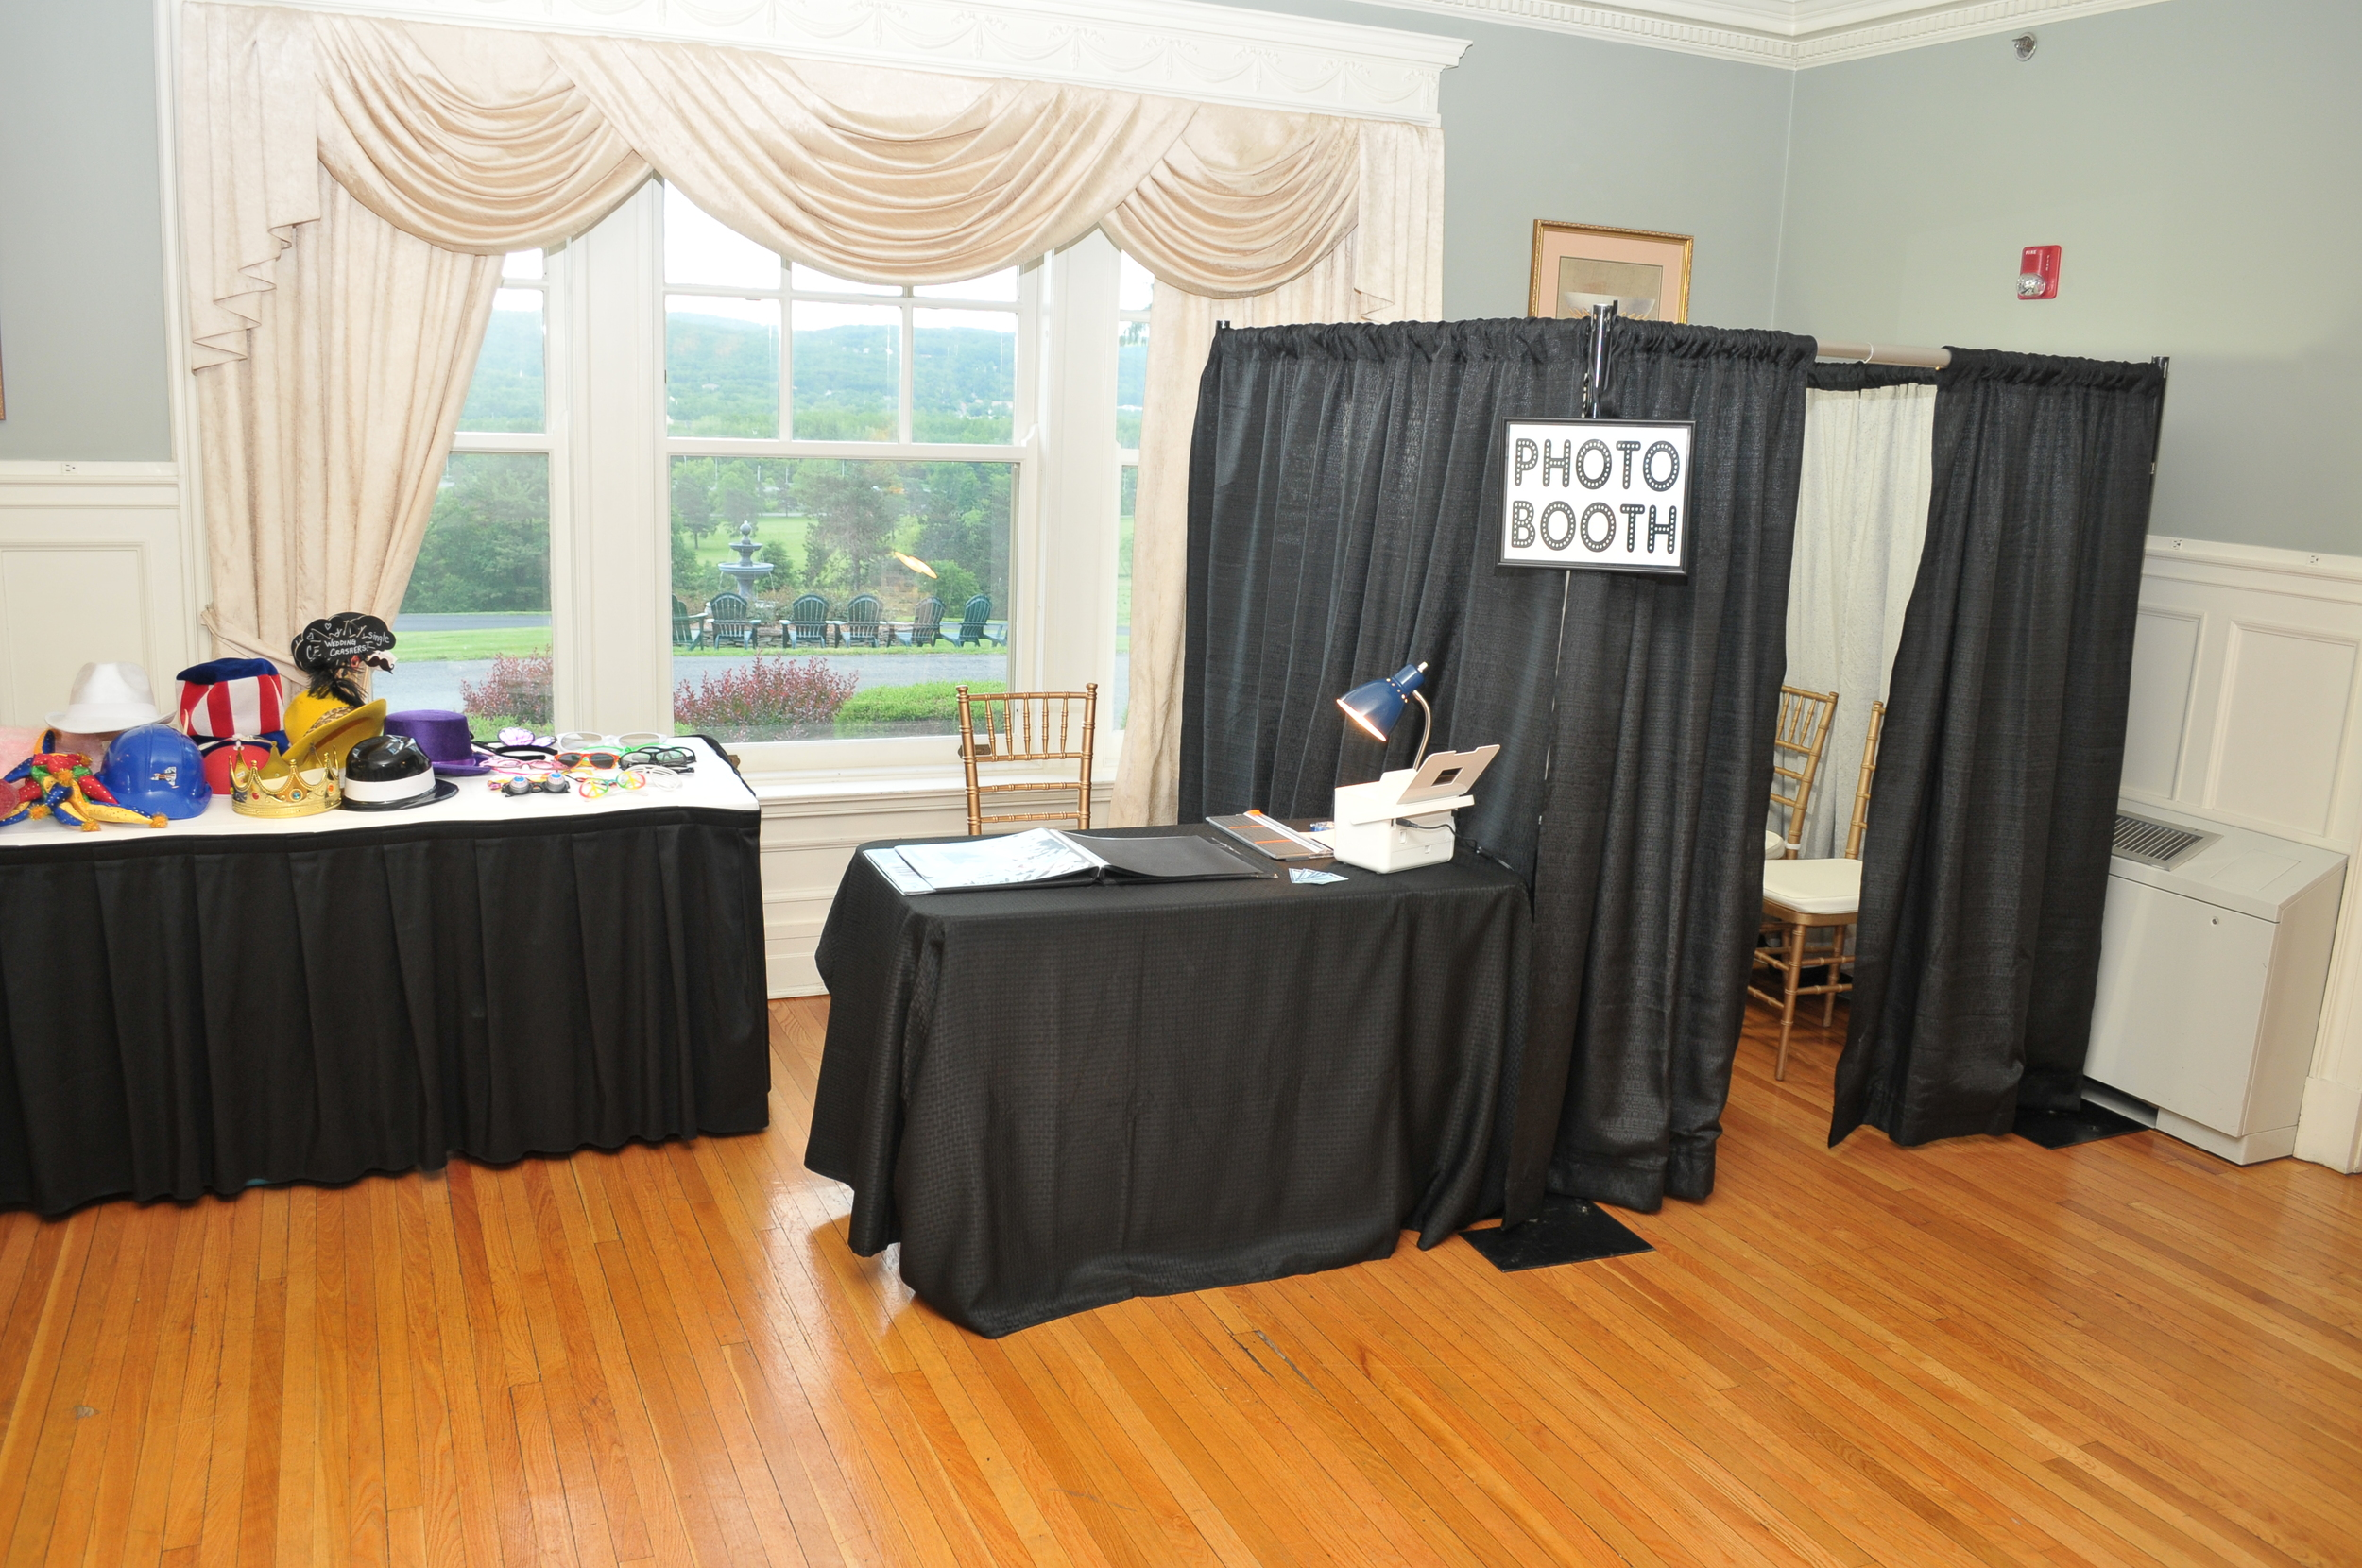 Our Booth ready for a reception at Traditions at the Glen